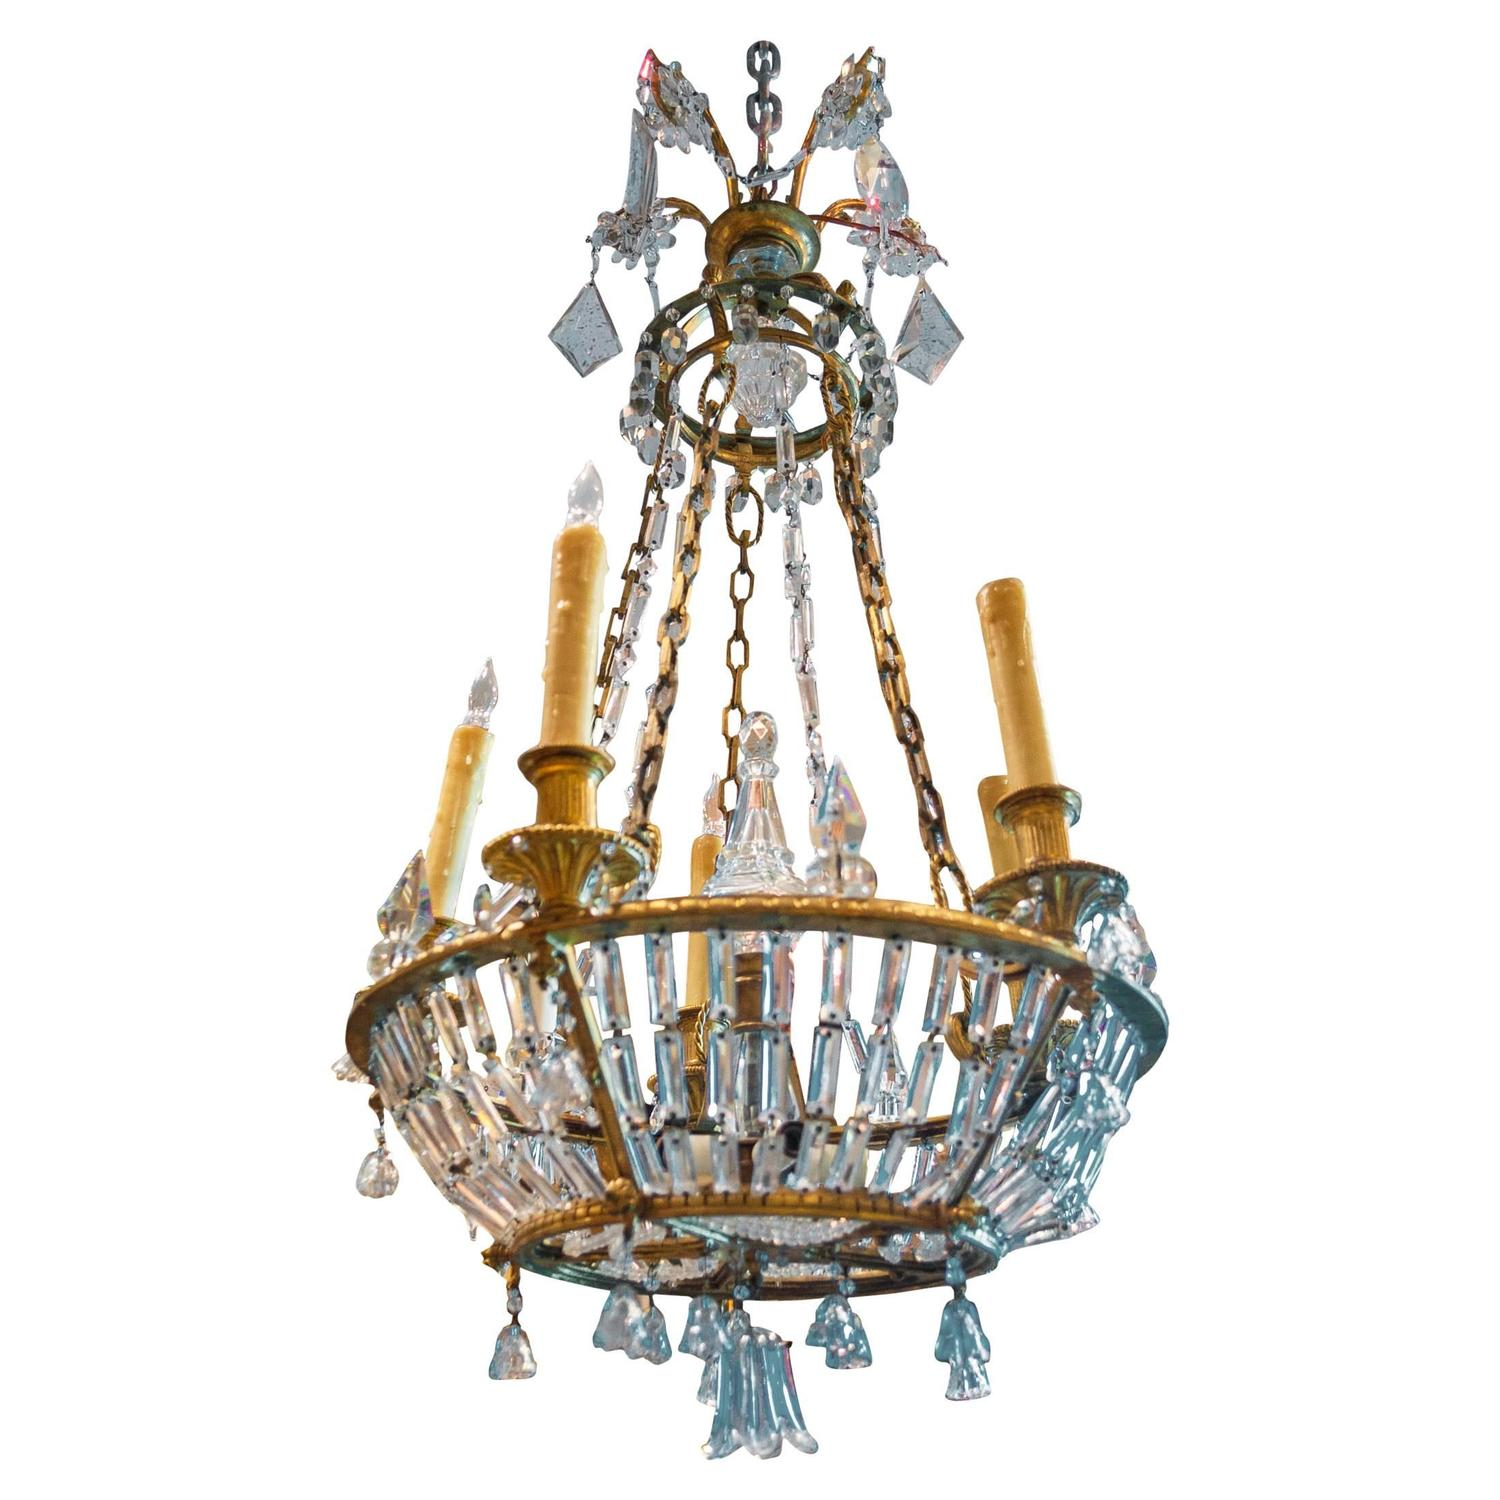 Fantastic Baltic Or Russian Crystal And Bronze Ten Light Chandelier For Sale